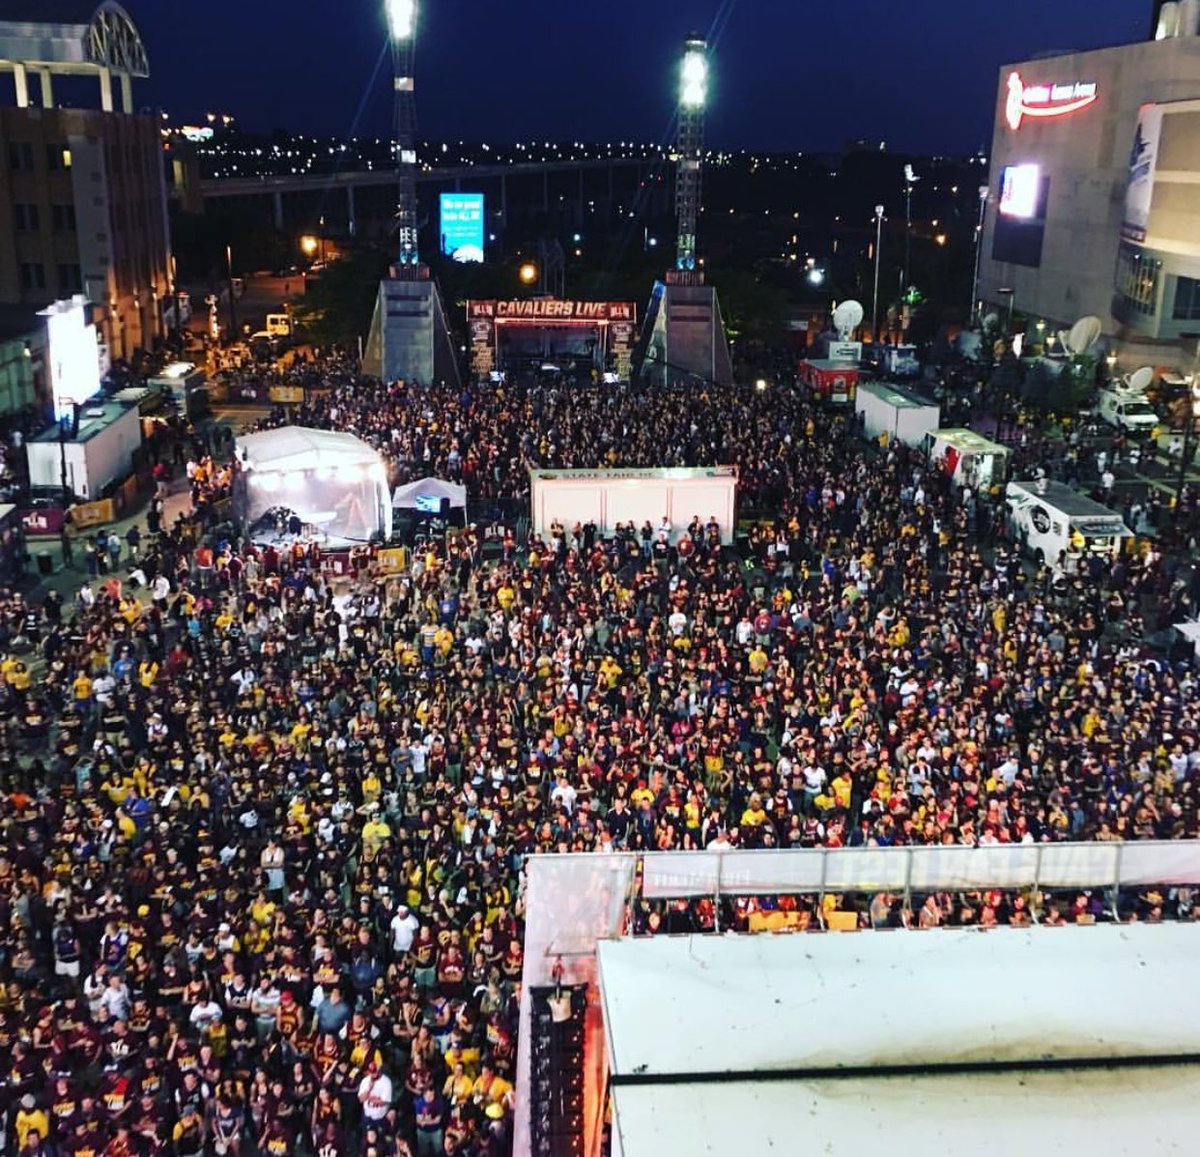 Tell me again how Cleveland isn't the Greatest SportsCity on the planet!?! https://t.co/Ov5NiJHP82